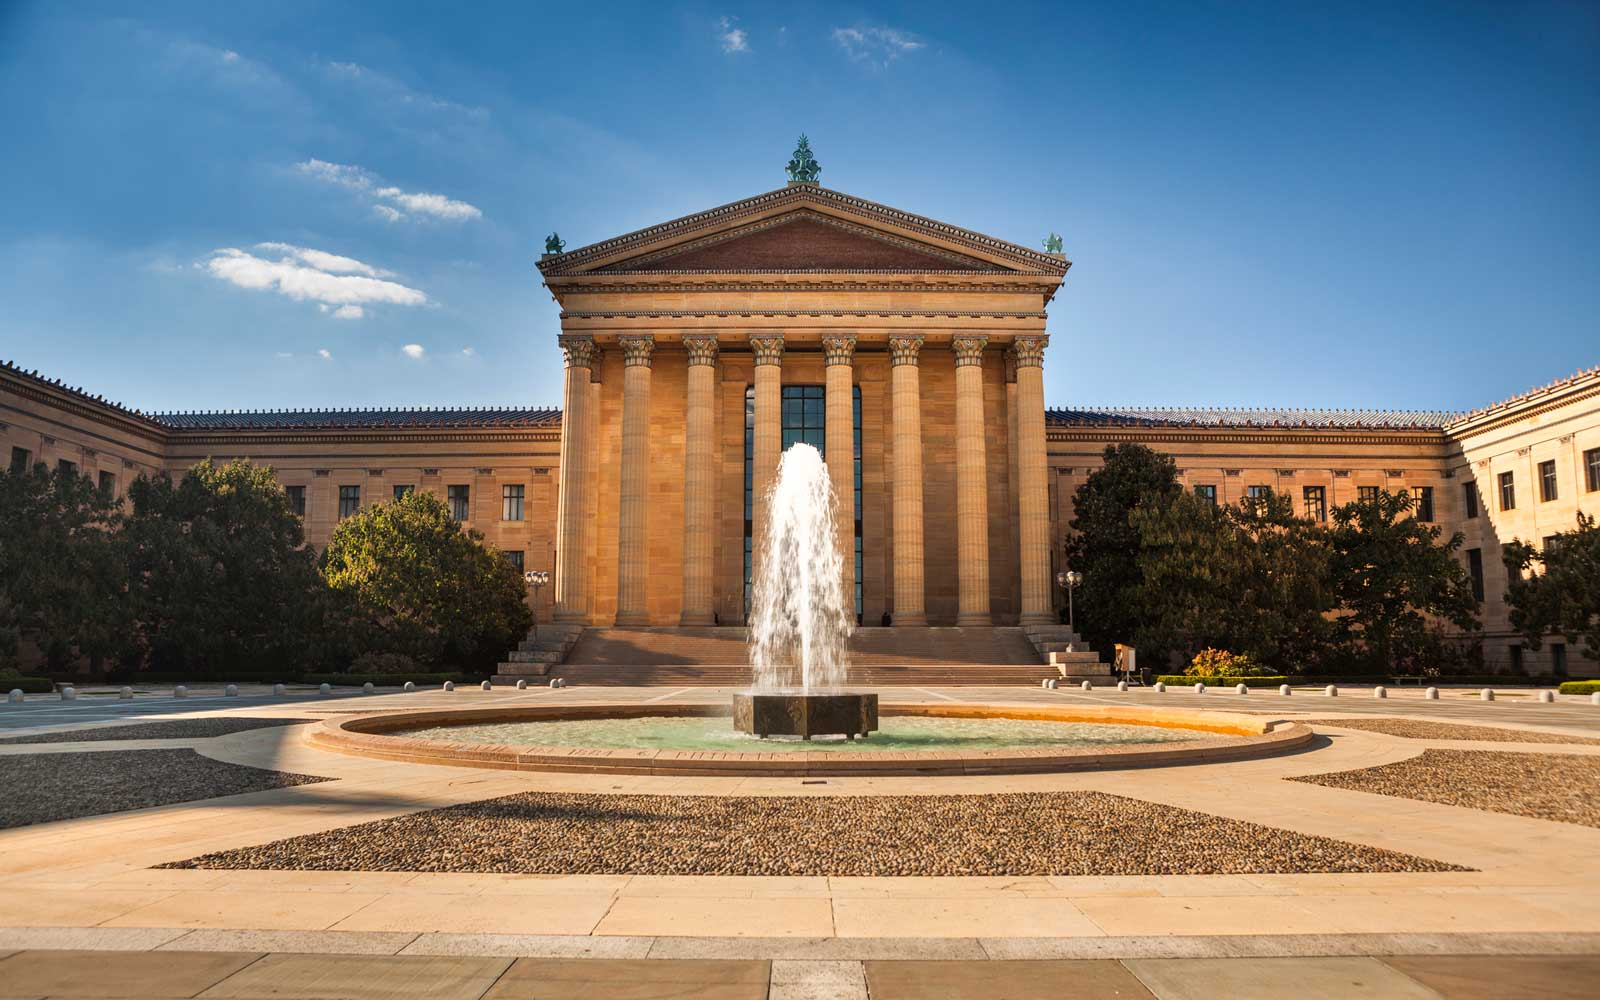 T+L Summer Shortlist: The Best Things to Do in Philadelphia